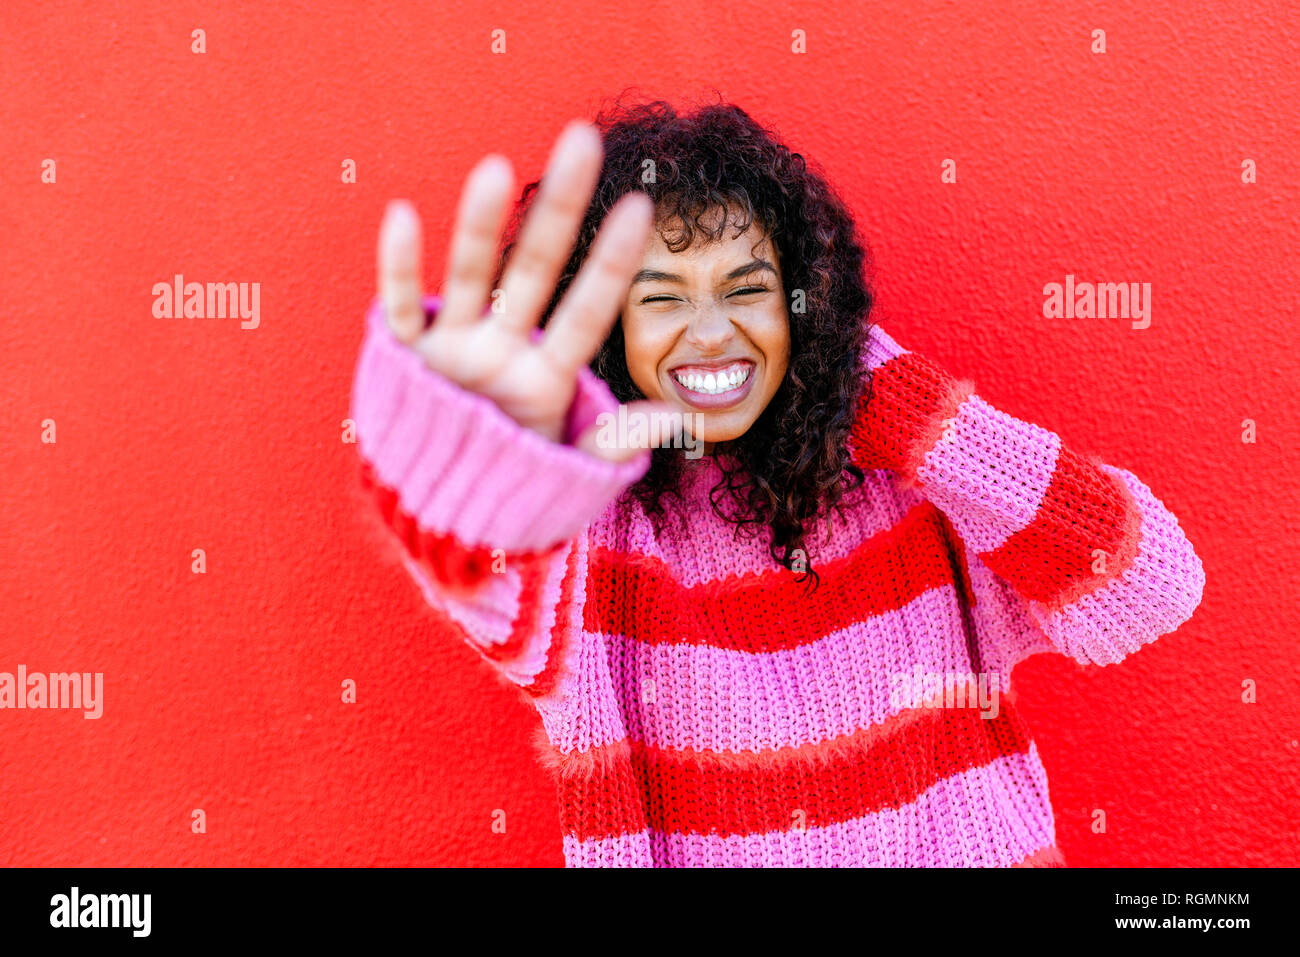 Portrait of laughing young woman in front of red wall Photo Stock